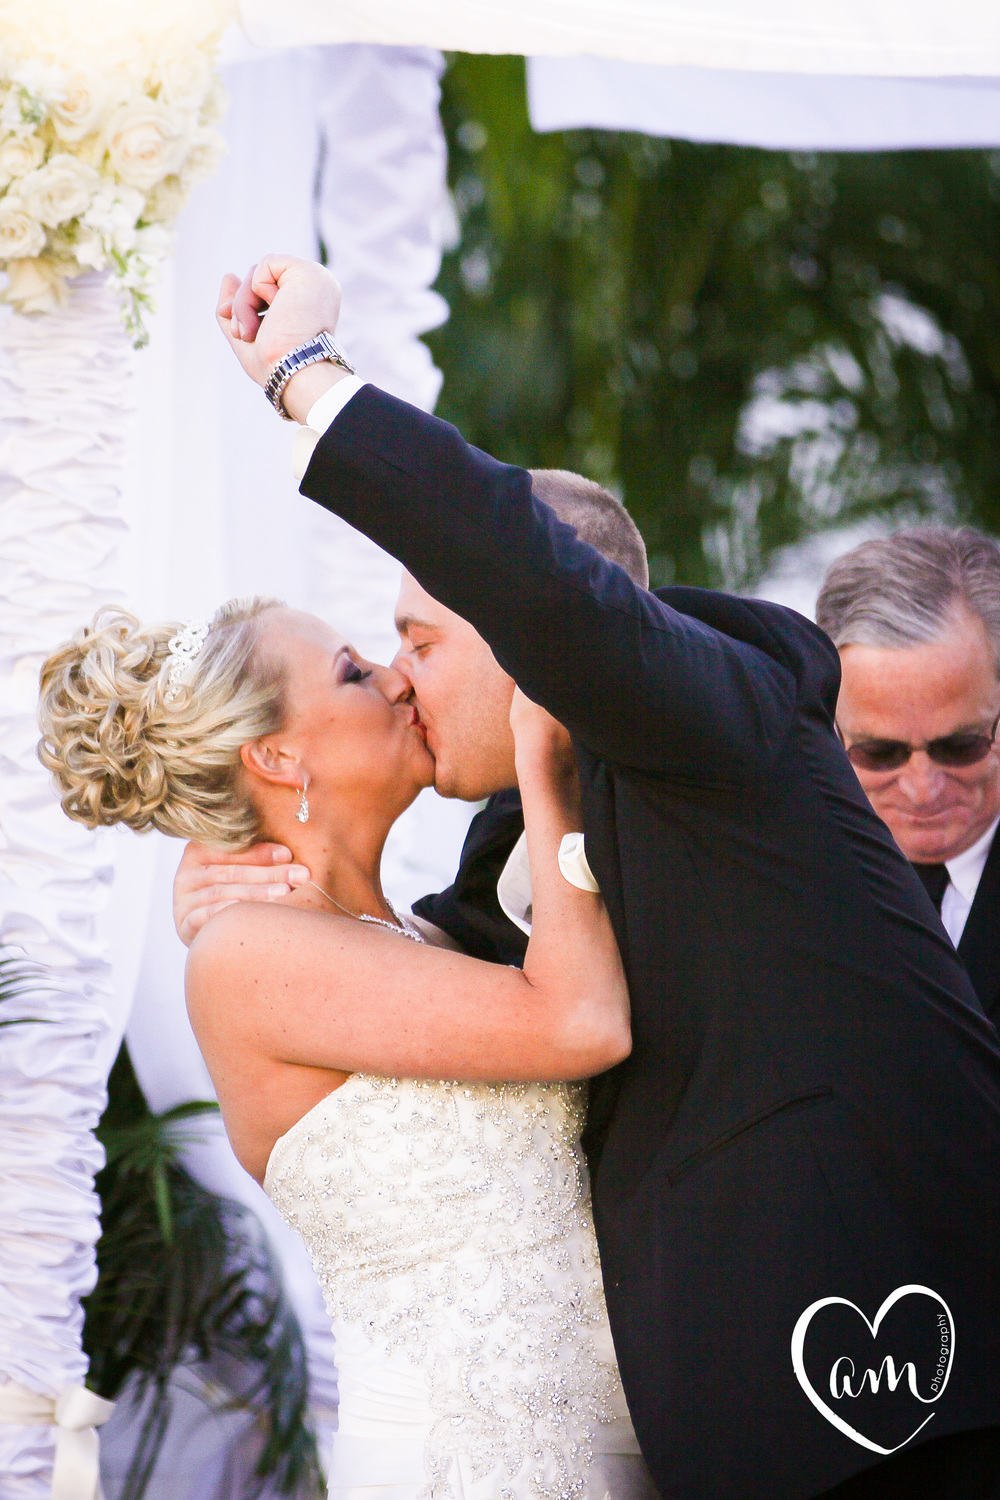 groom fist pumps during first kiss with new wife in joyful orlando wedding ceremony